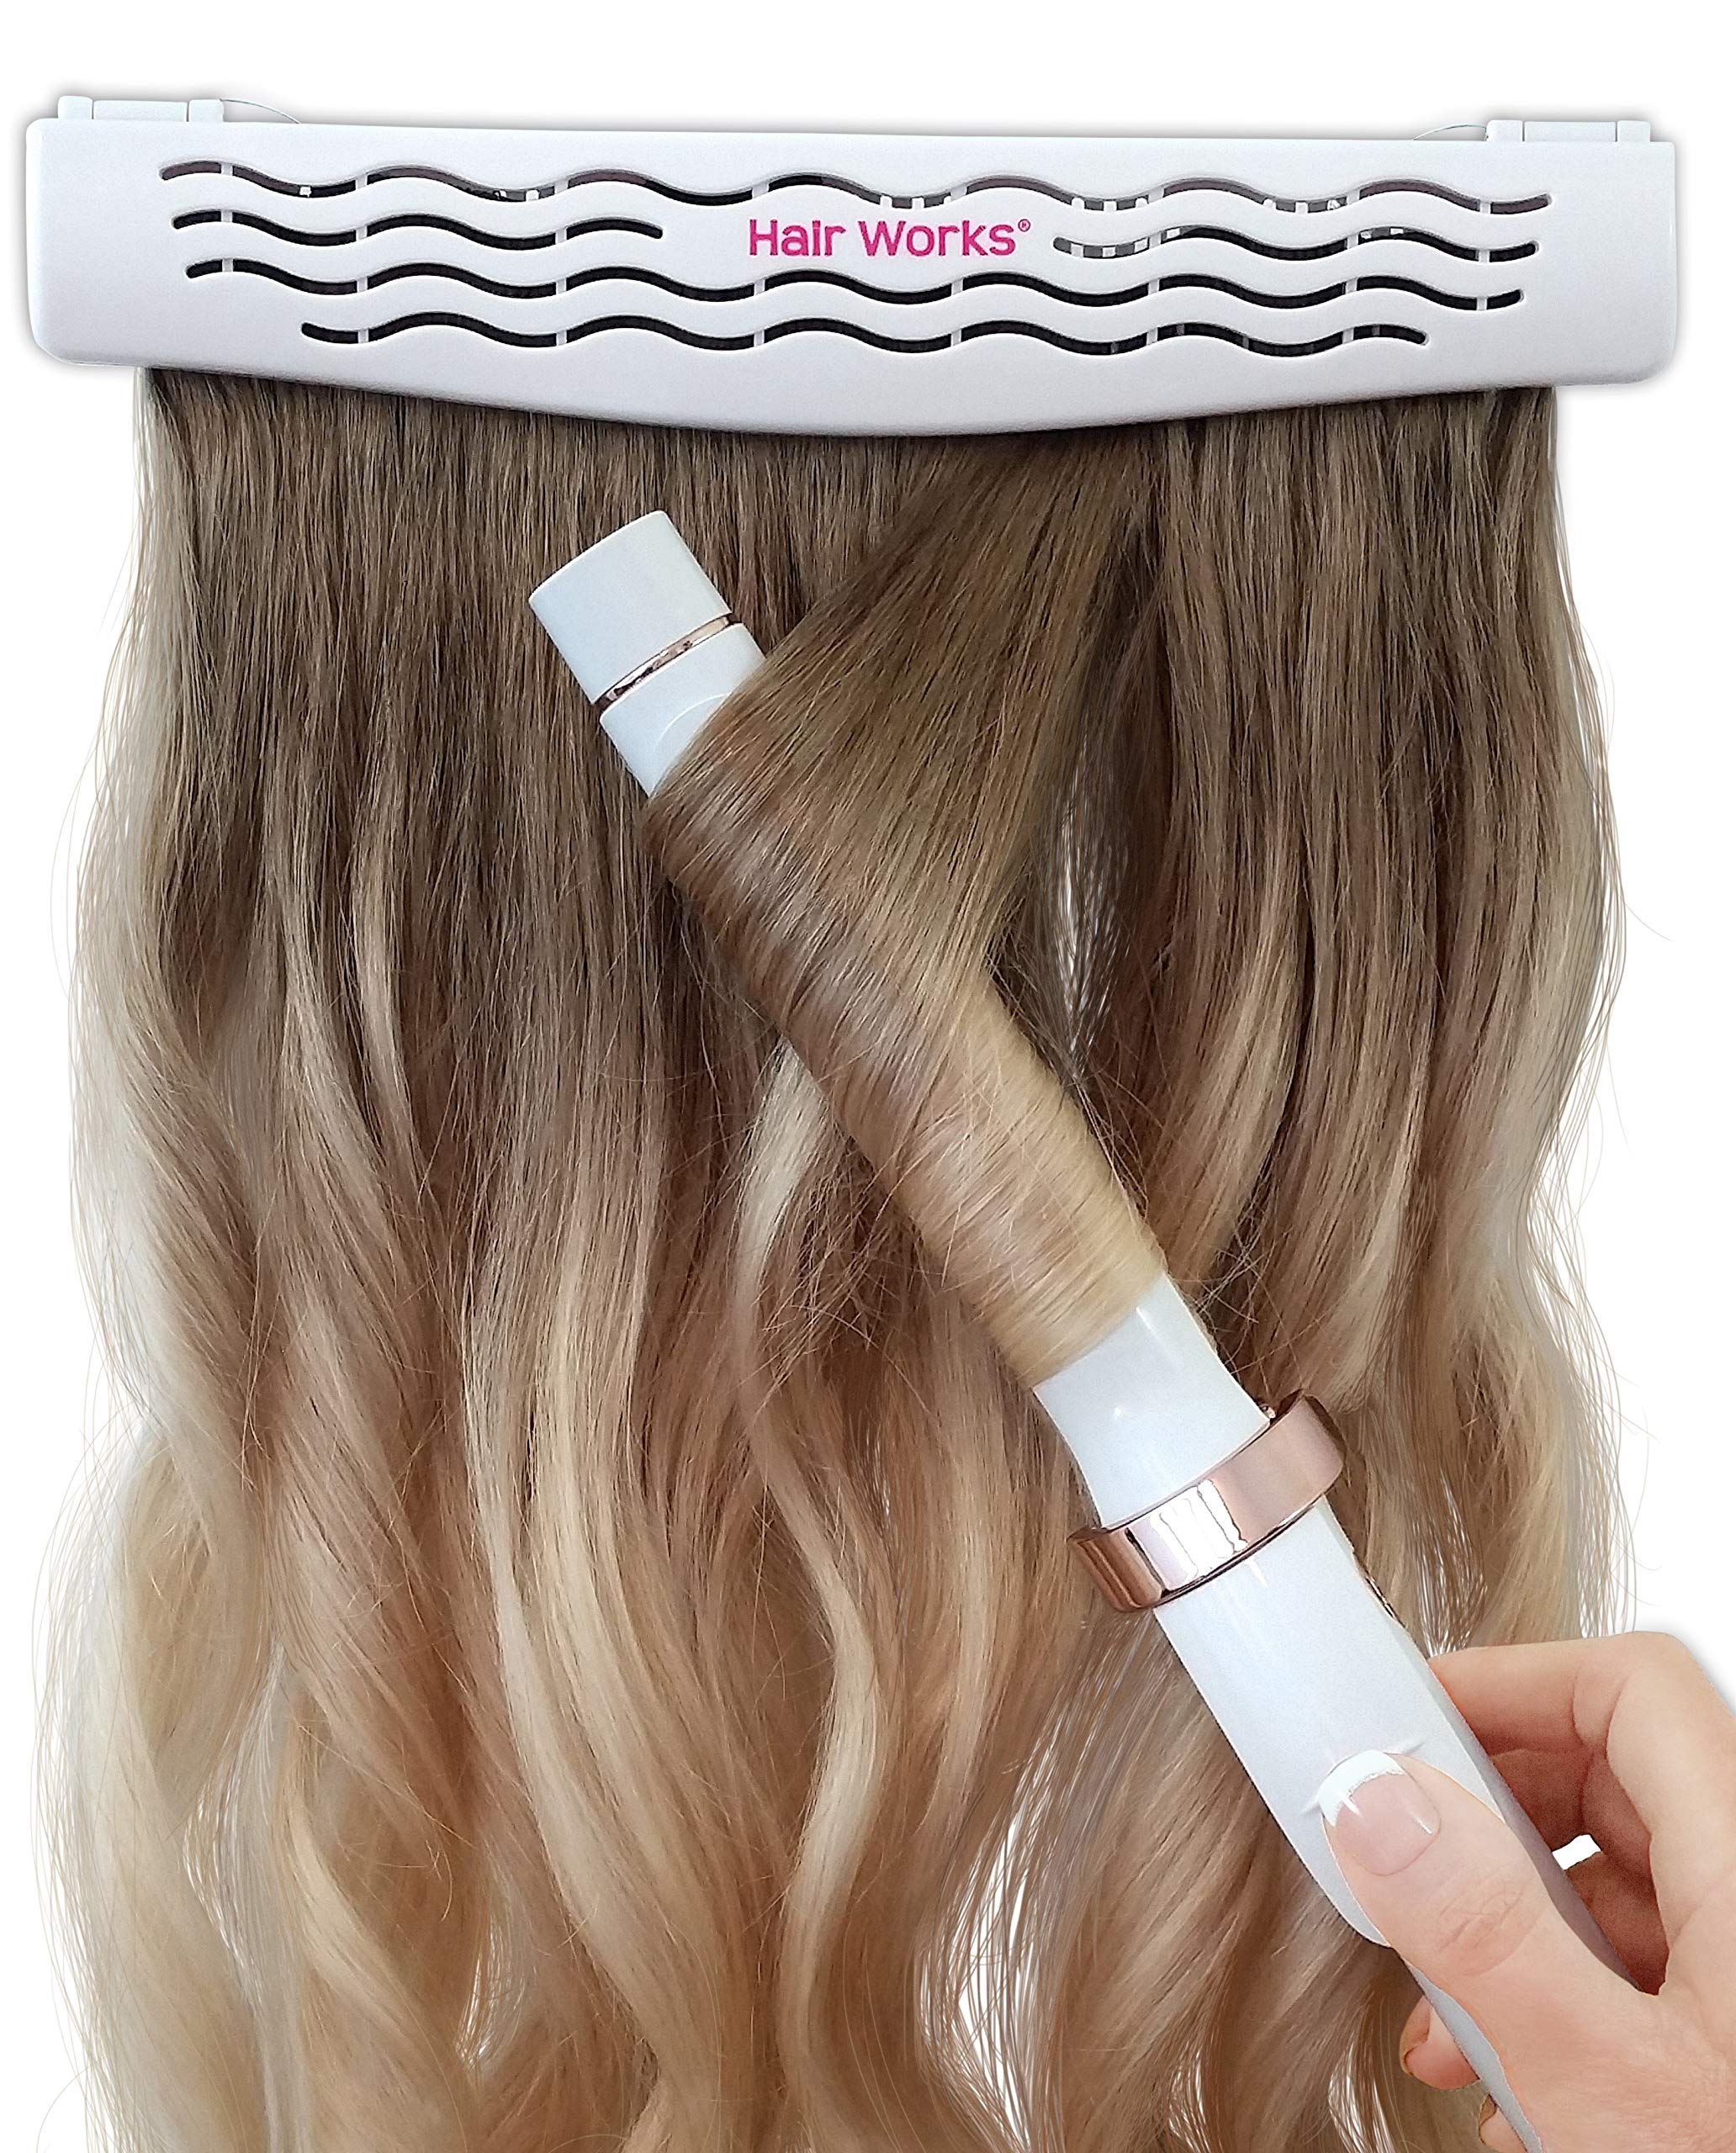 Hair Works 4-in-1 Hair Extension Style Caddy - The Original Hair Extension Holder Designed To Securely Hold Your Extensions While You Wash, Style, Pack and Store Them by Hair Works